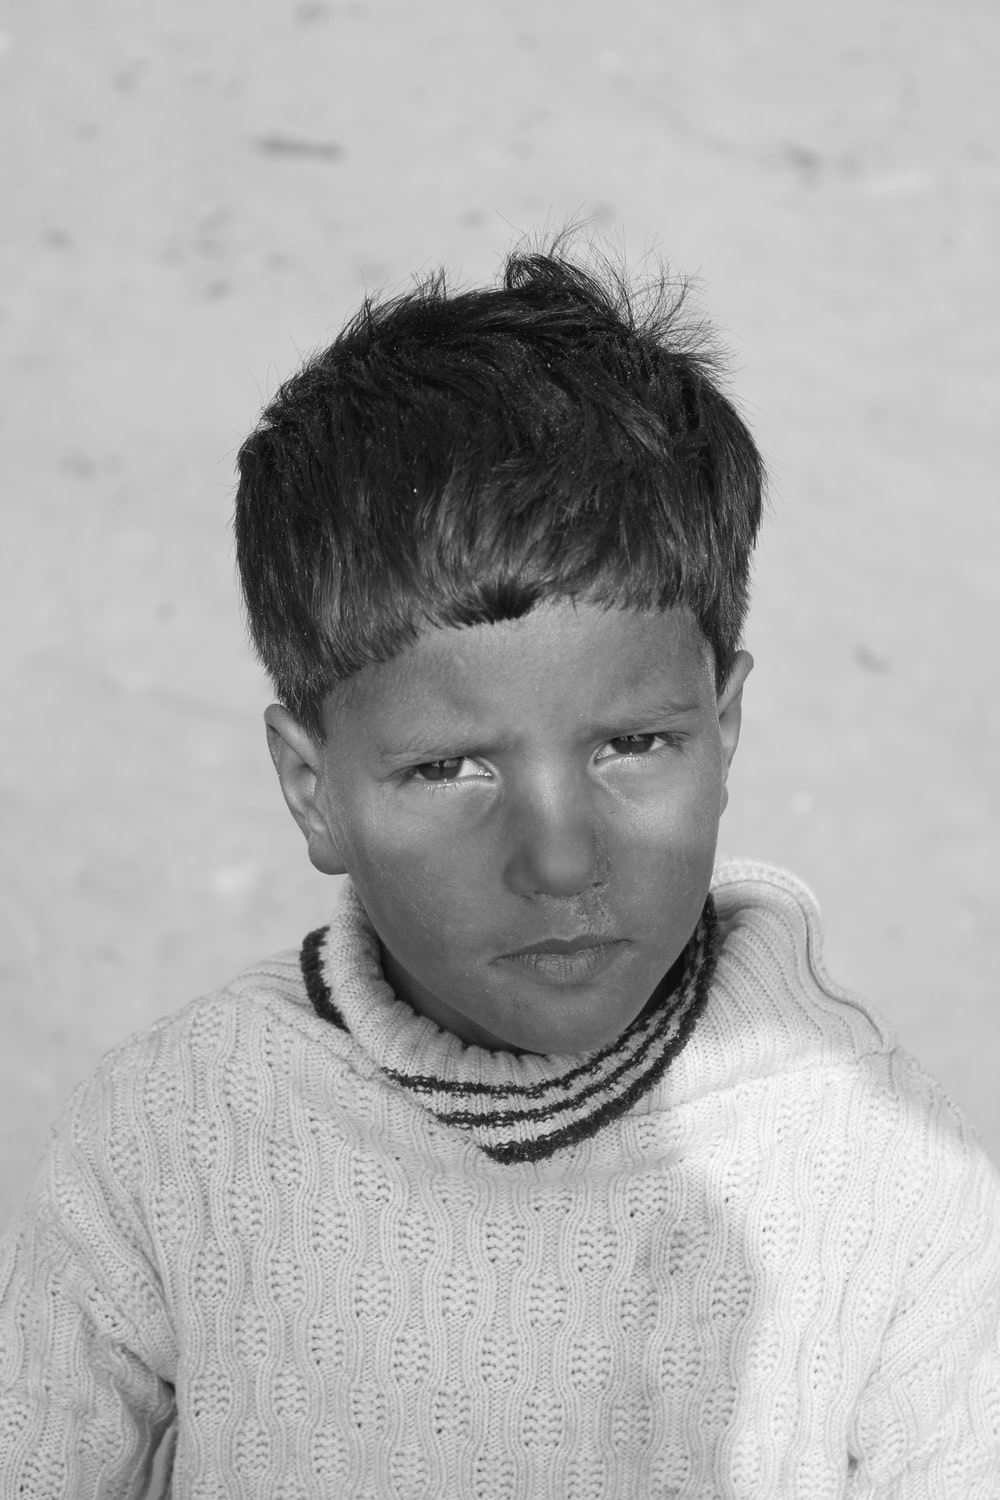 grayscale photo of boy in knit sweater